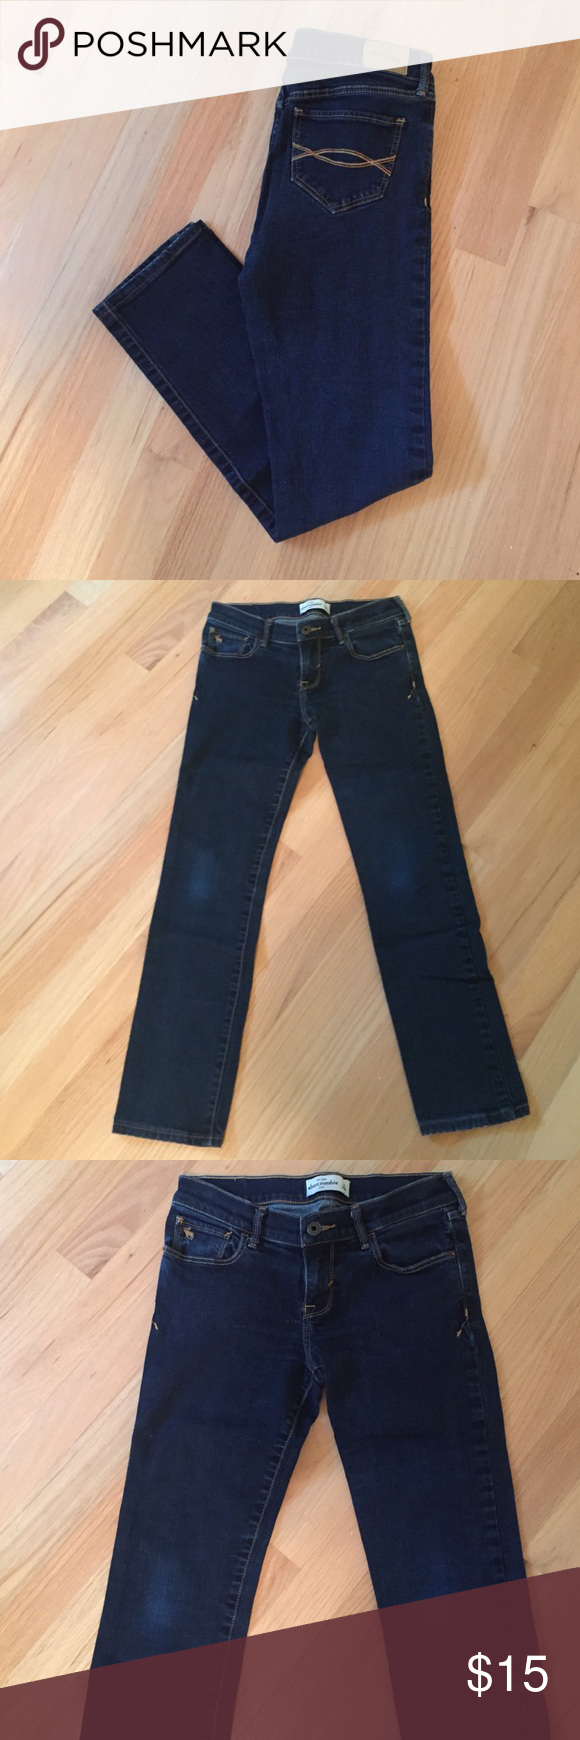 Abercrombie dark wash skinny jeans Great condition! abercrombie kids Bottoms Jeans